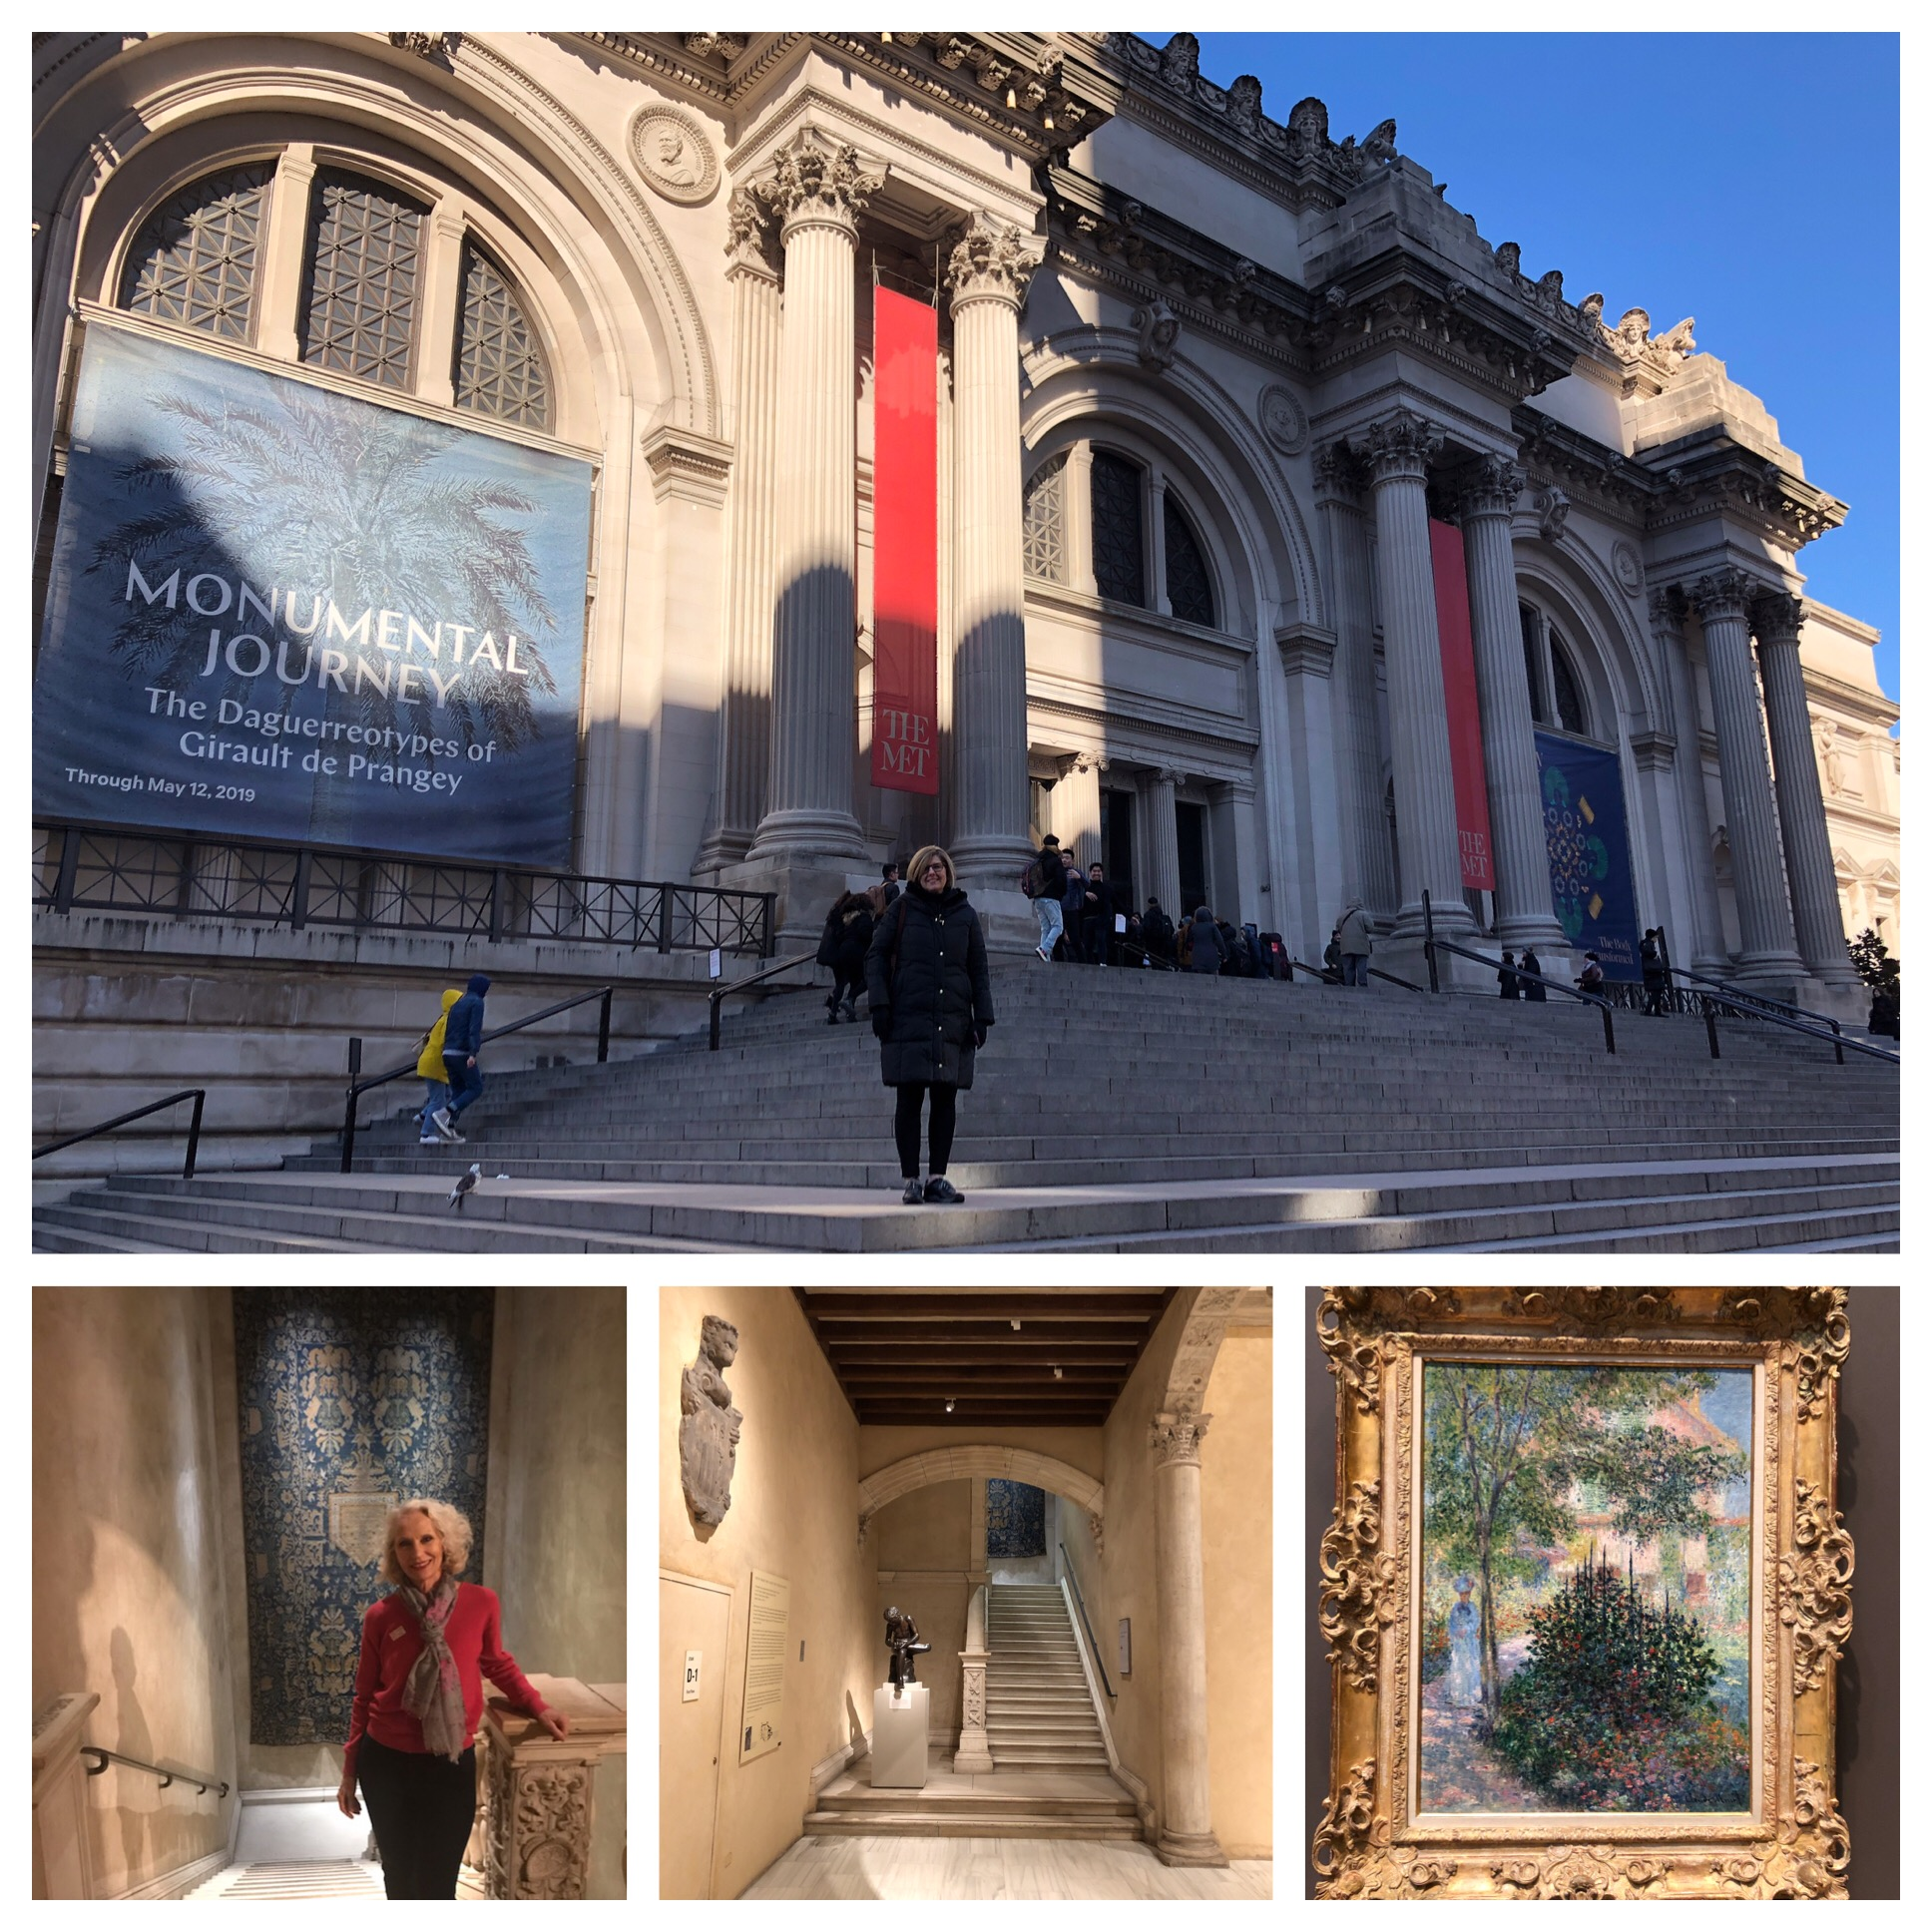 We spent most of our time with the  Impressionists. I could spend hours just walking through the beautiful building.